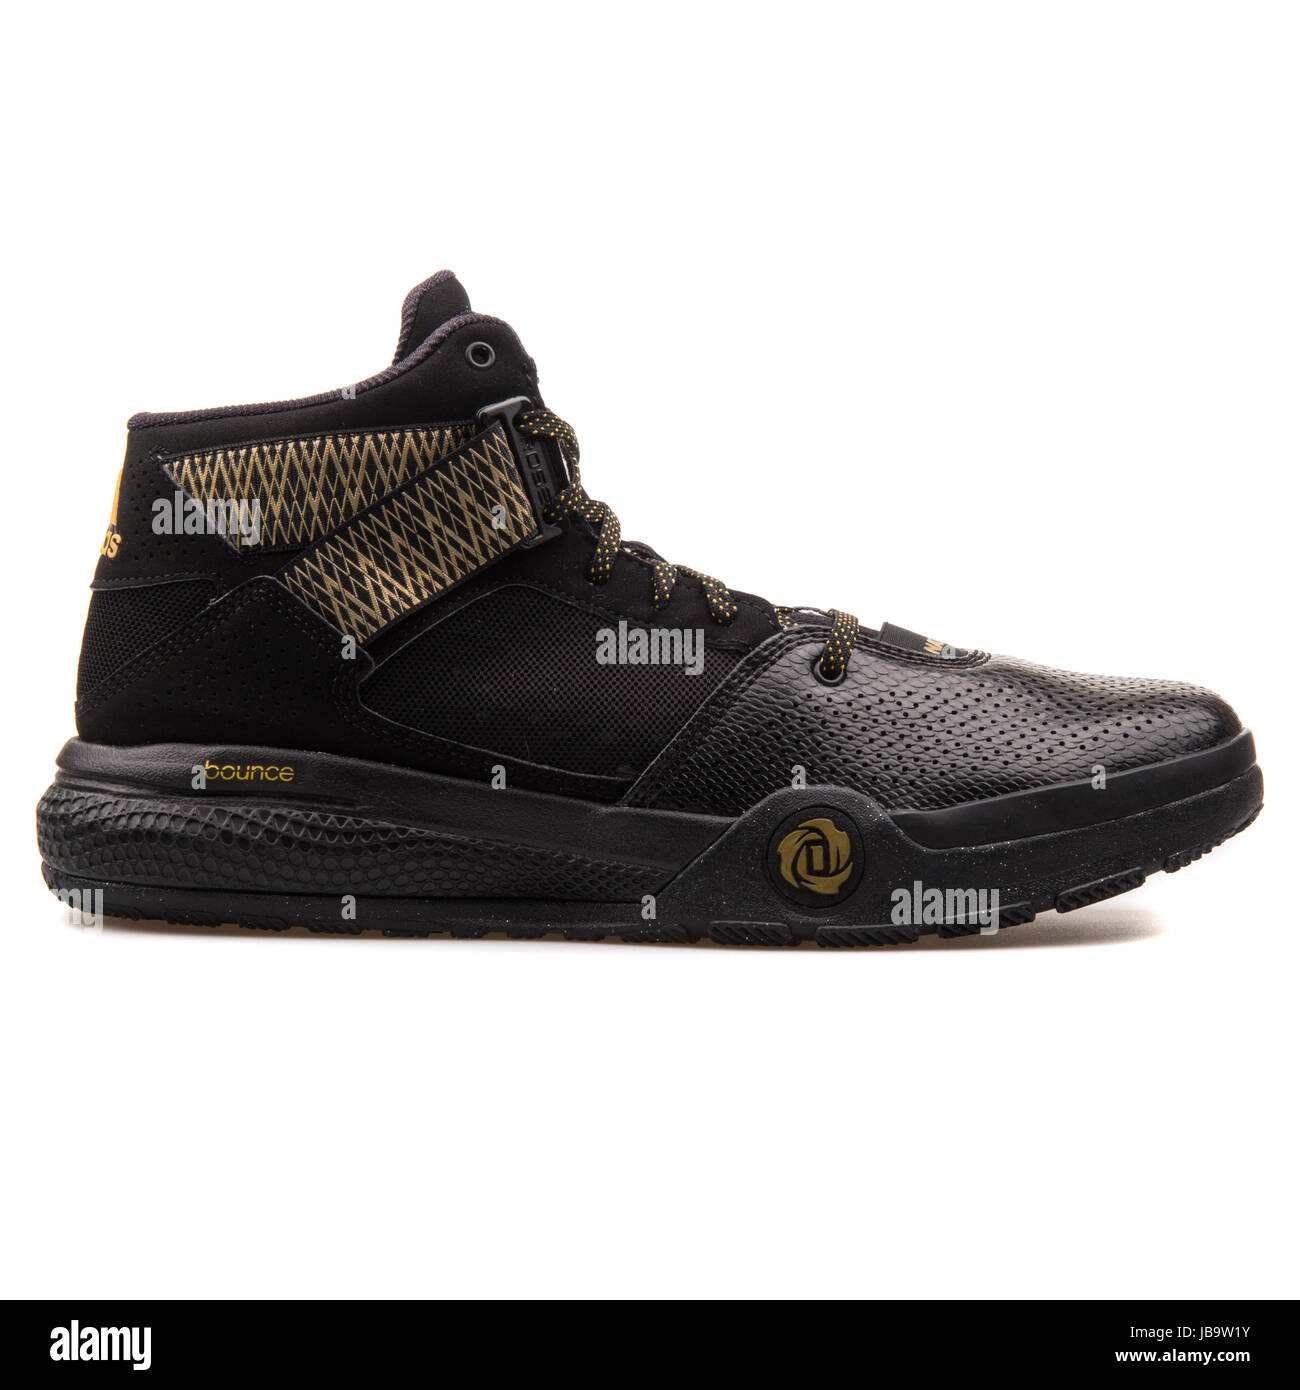 huge discount fd836 f31fd Adidas D Rose 773 IV Black and Gold Men s Basketball Shoes - D69592